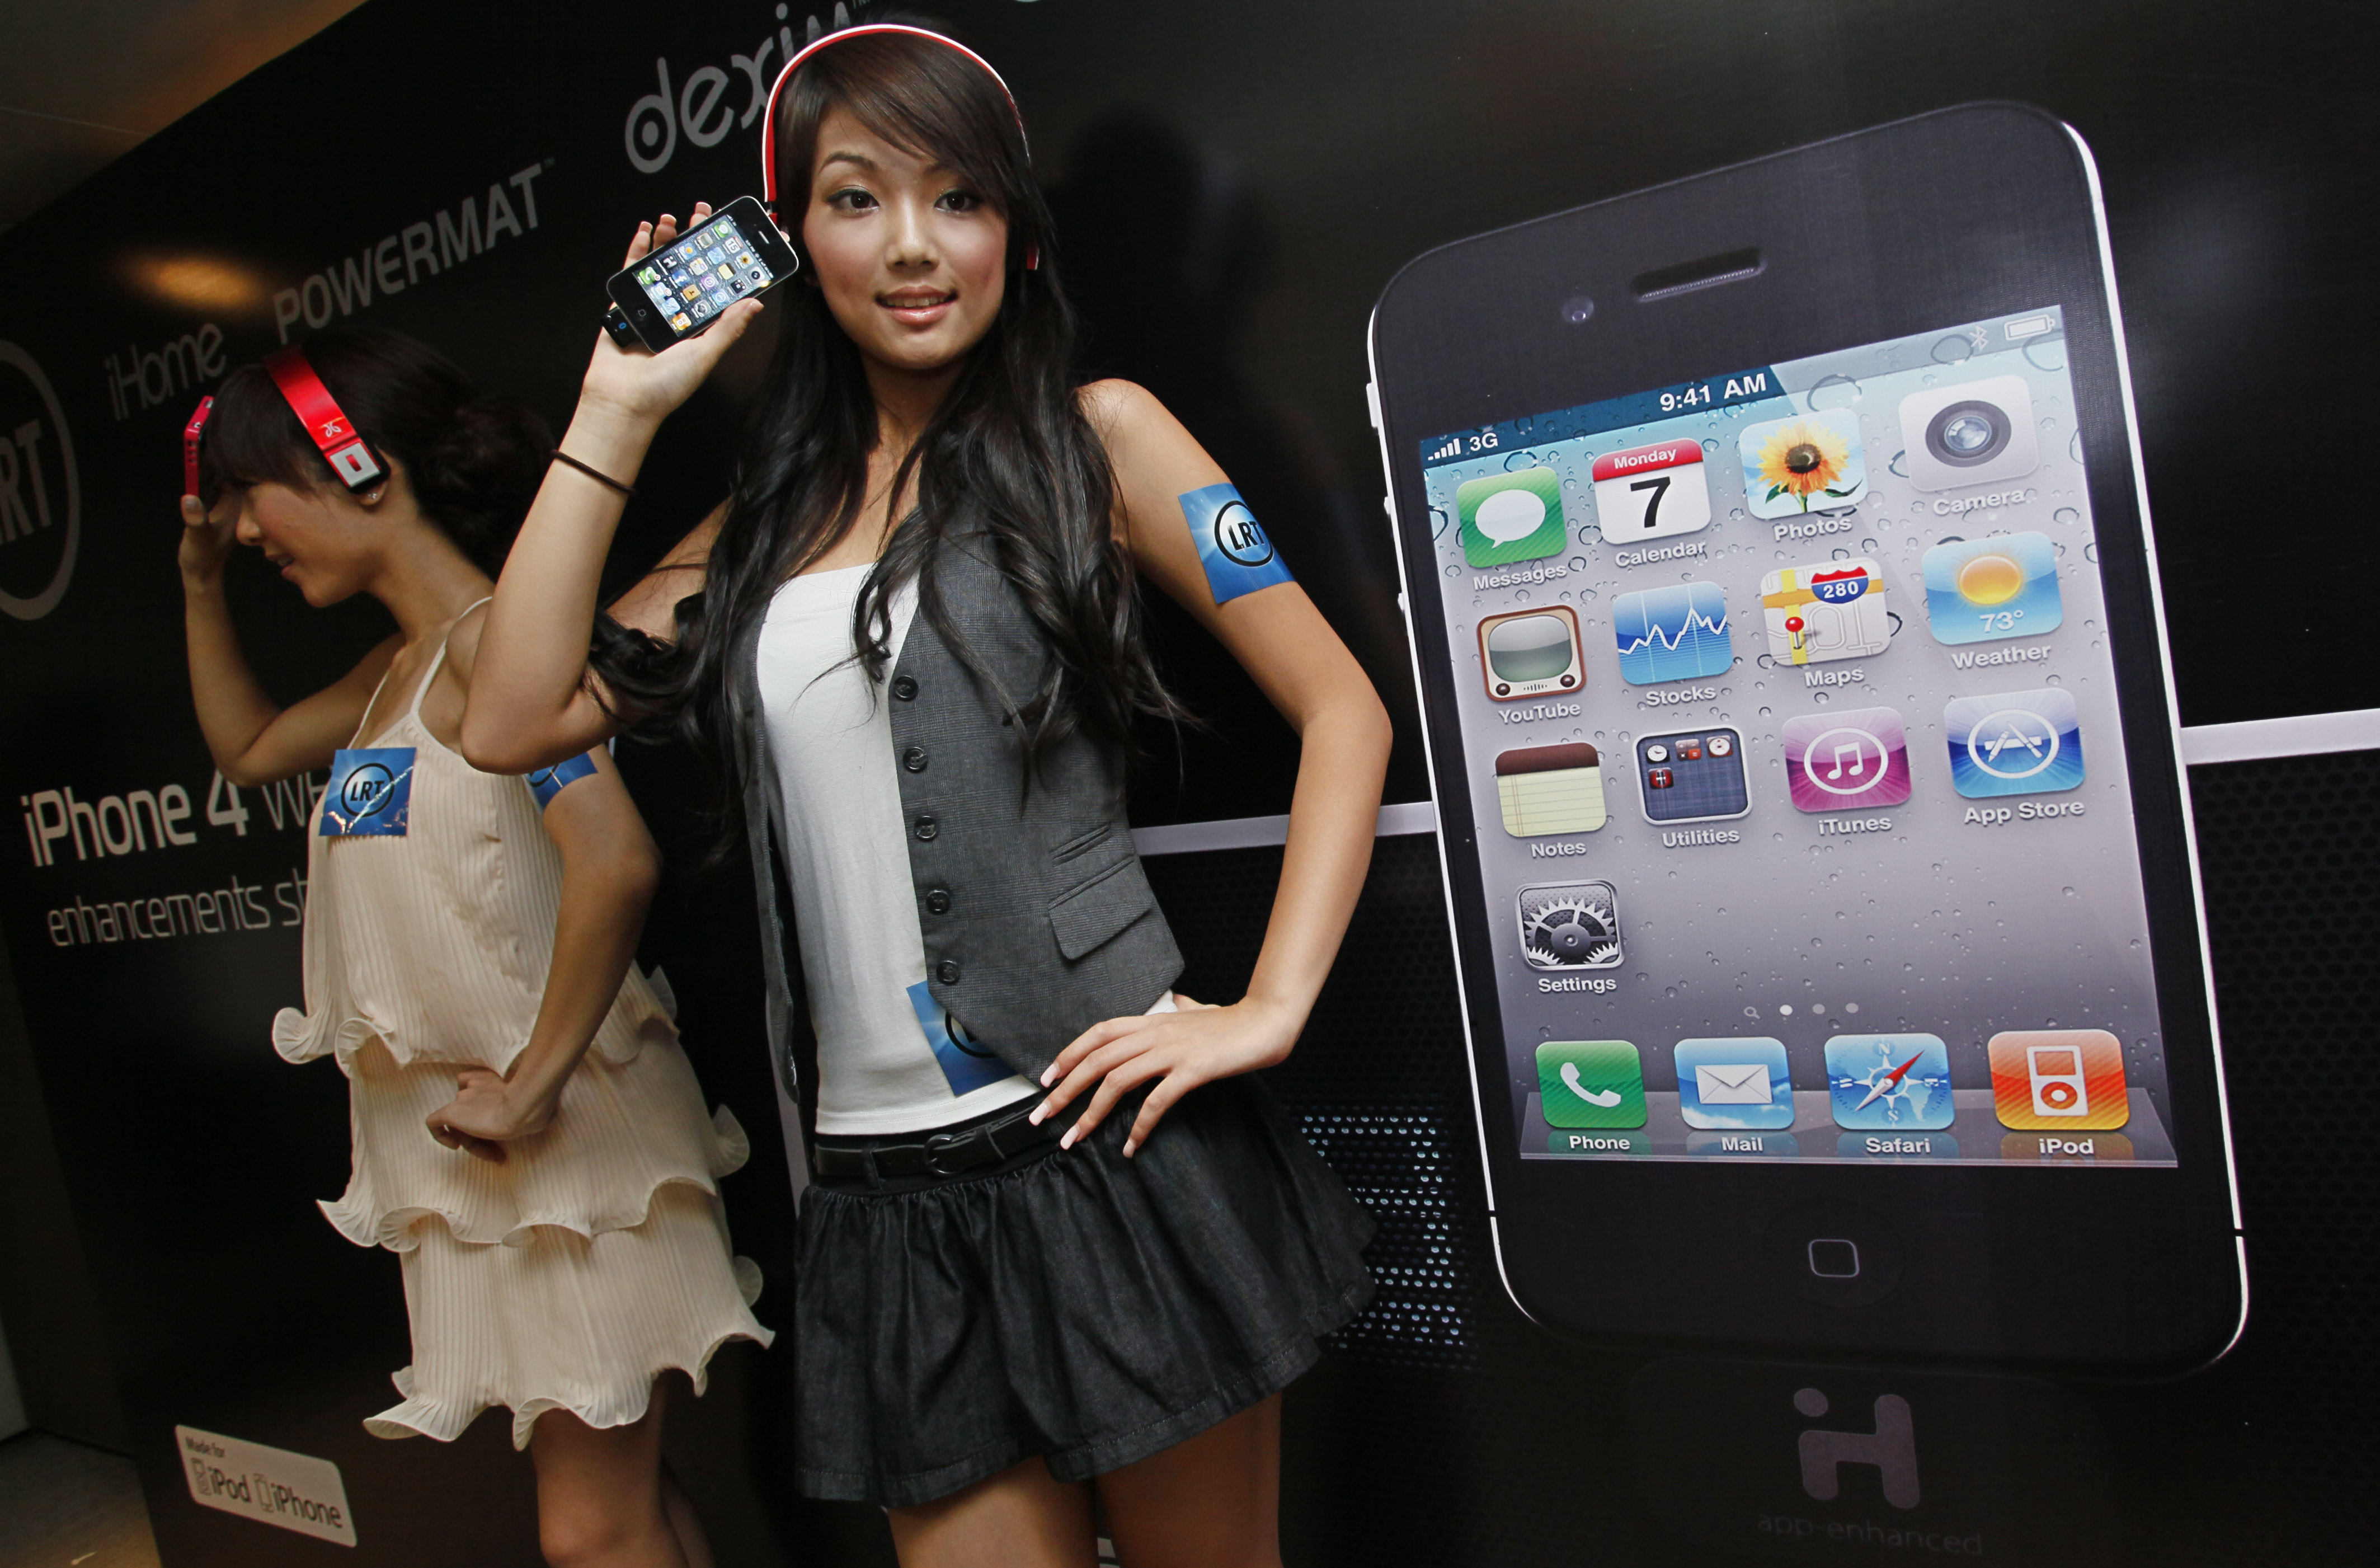 Models hold the iPhone 4 during a promotional event in Hong Kong on Thursday.